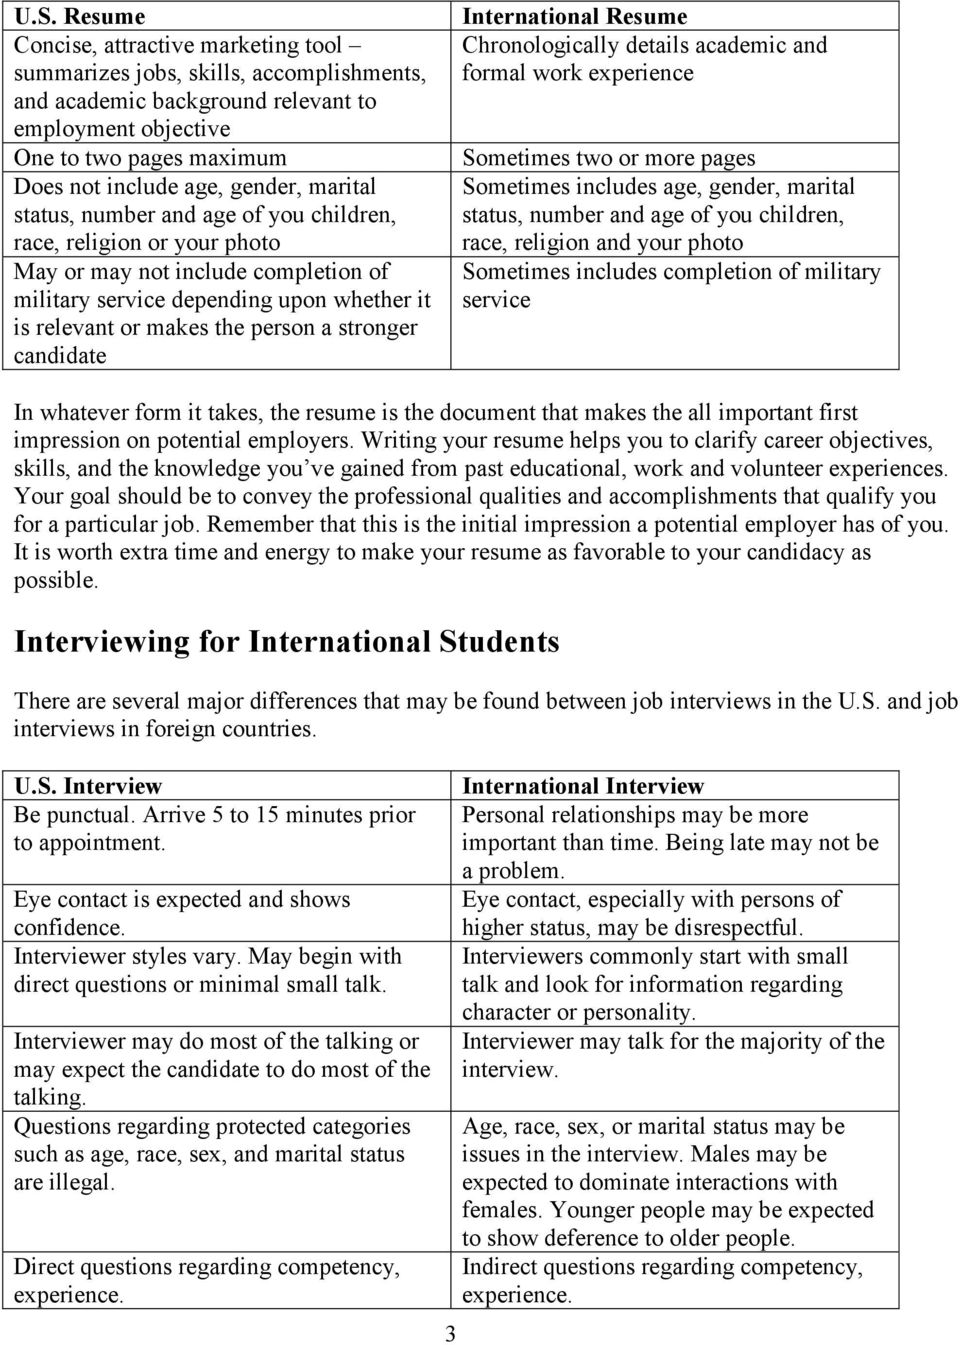 stronger candidate International Resume Chronologically details academic and formal work experience Sometimes two or more pages Sometimes includes age, gender, marital status, number and age of you